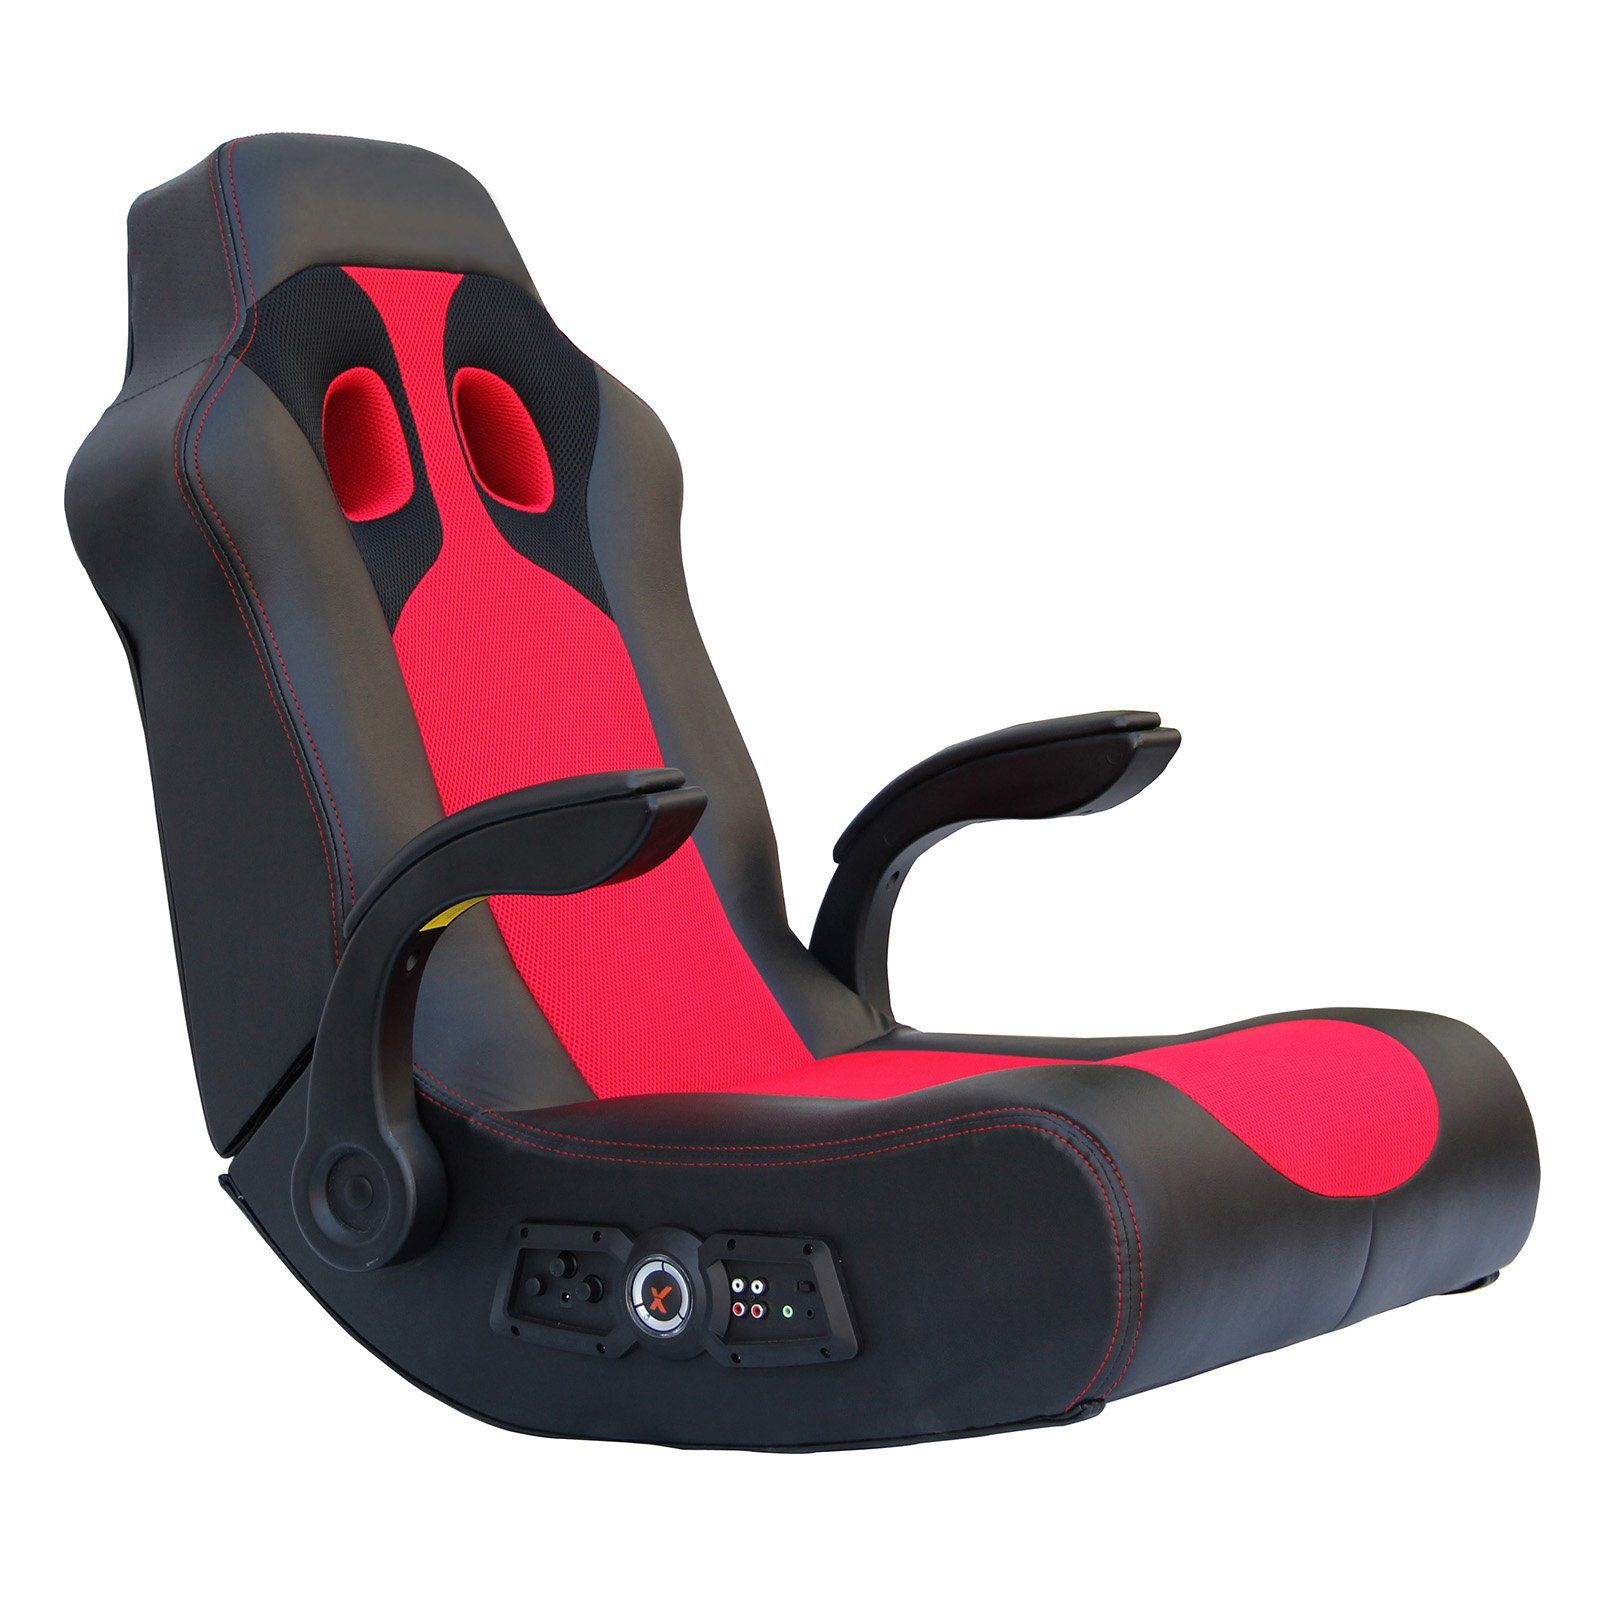 Ace Casual Furniture XRocker Vibe Video Game Chair with 2